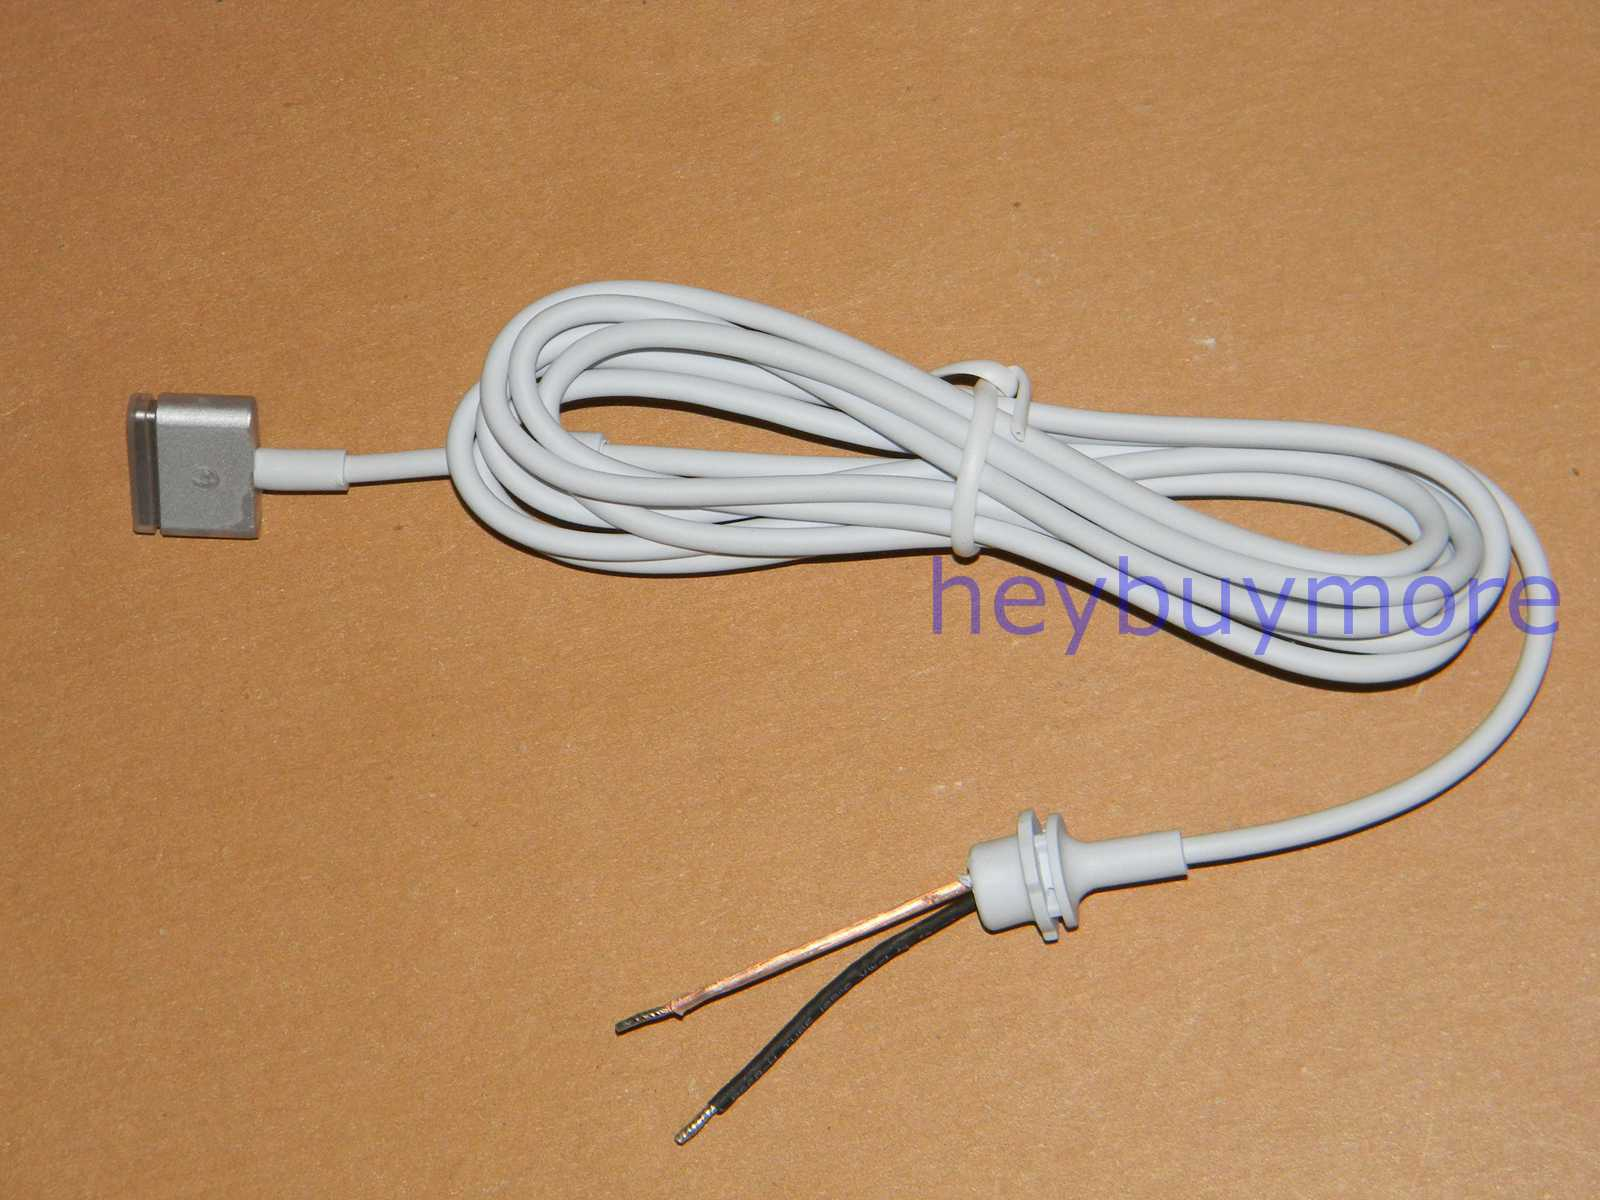 85w a1424 ac power adapter dc repair cord cable f macbook pro 15 a1398 retina ebay. Black Bedroom Furniture Sets. Home Design Ideas